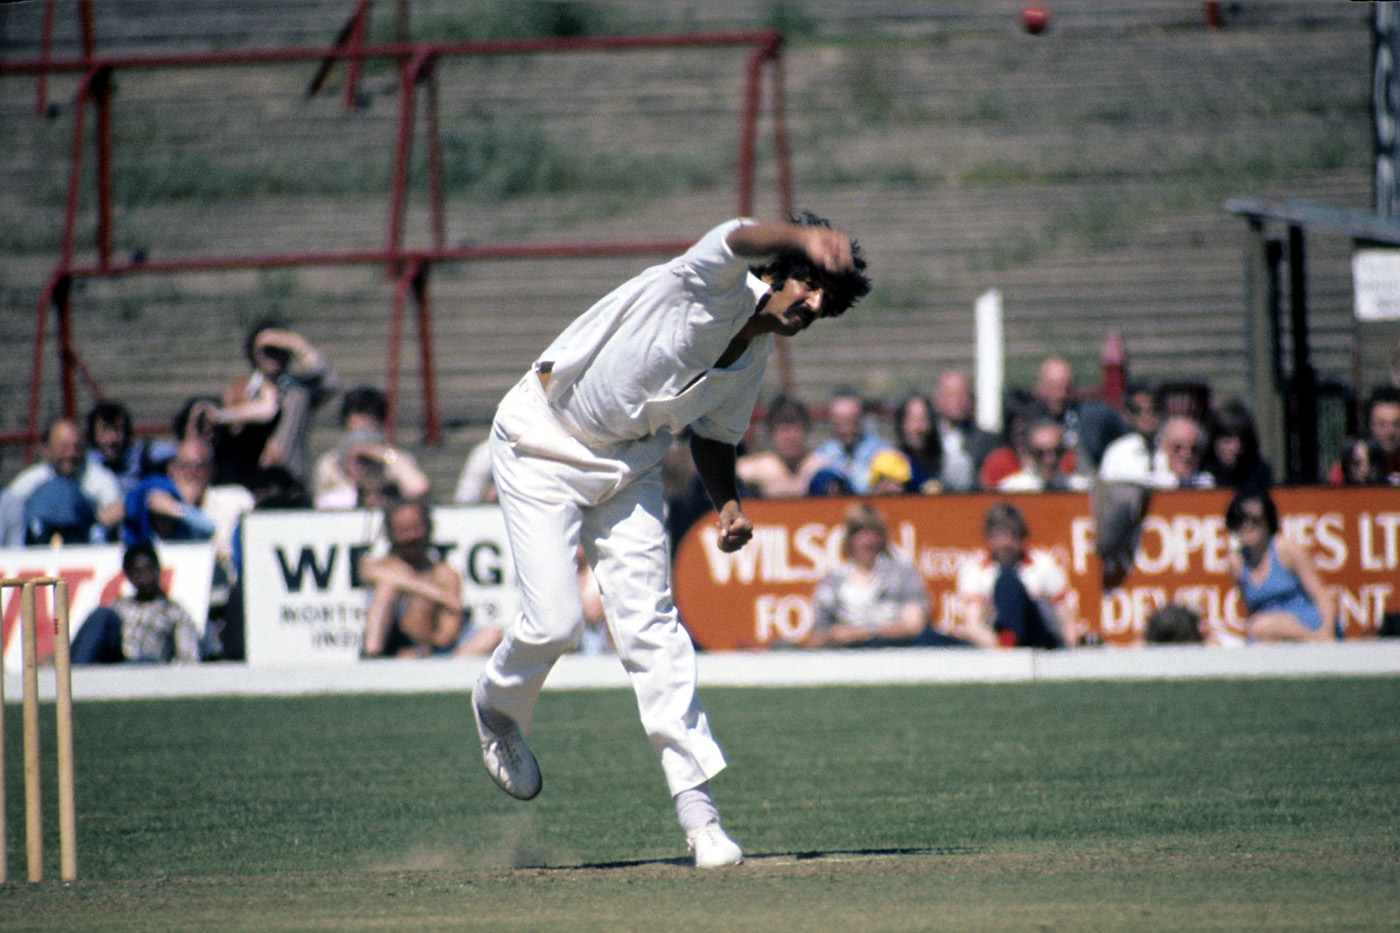 Sarfraz Nawaz, widely held to be one of the progenitors of reverse swing, played for Northamptonshire